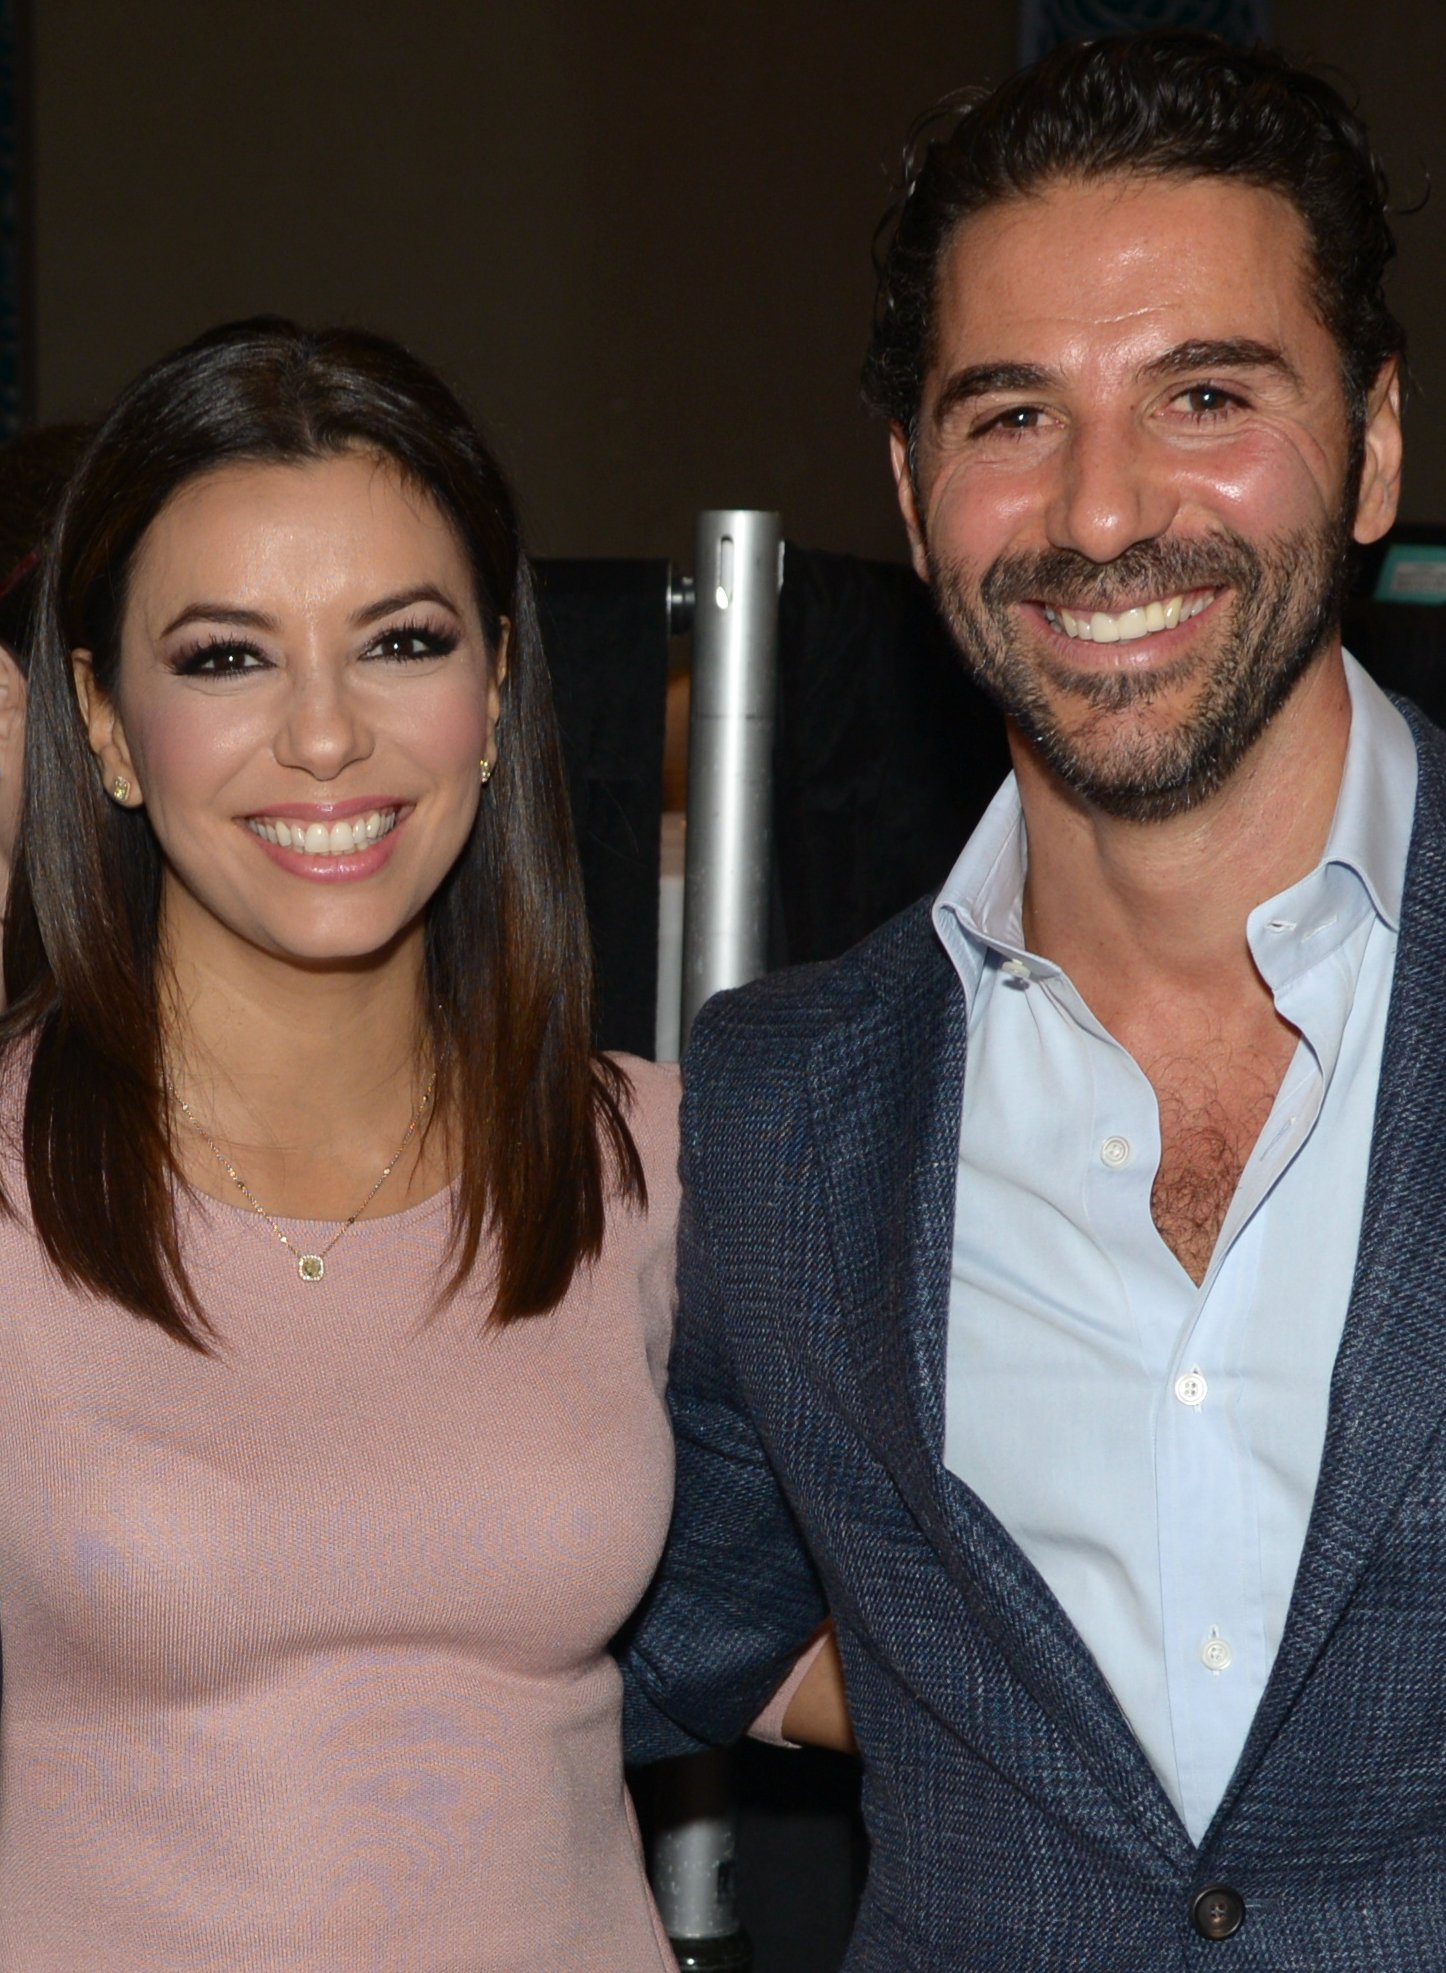 Eva Longoria and Jose Baston attend NATPE in Miami Beach, Florida on January 22, 2015 | Photo: Getty Images